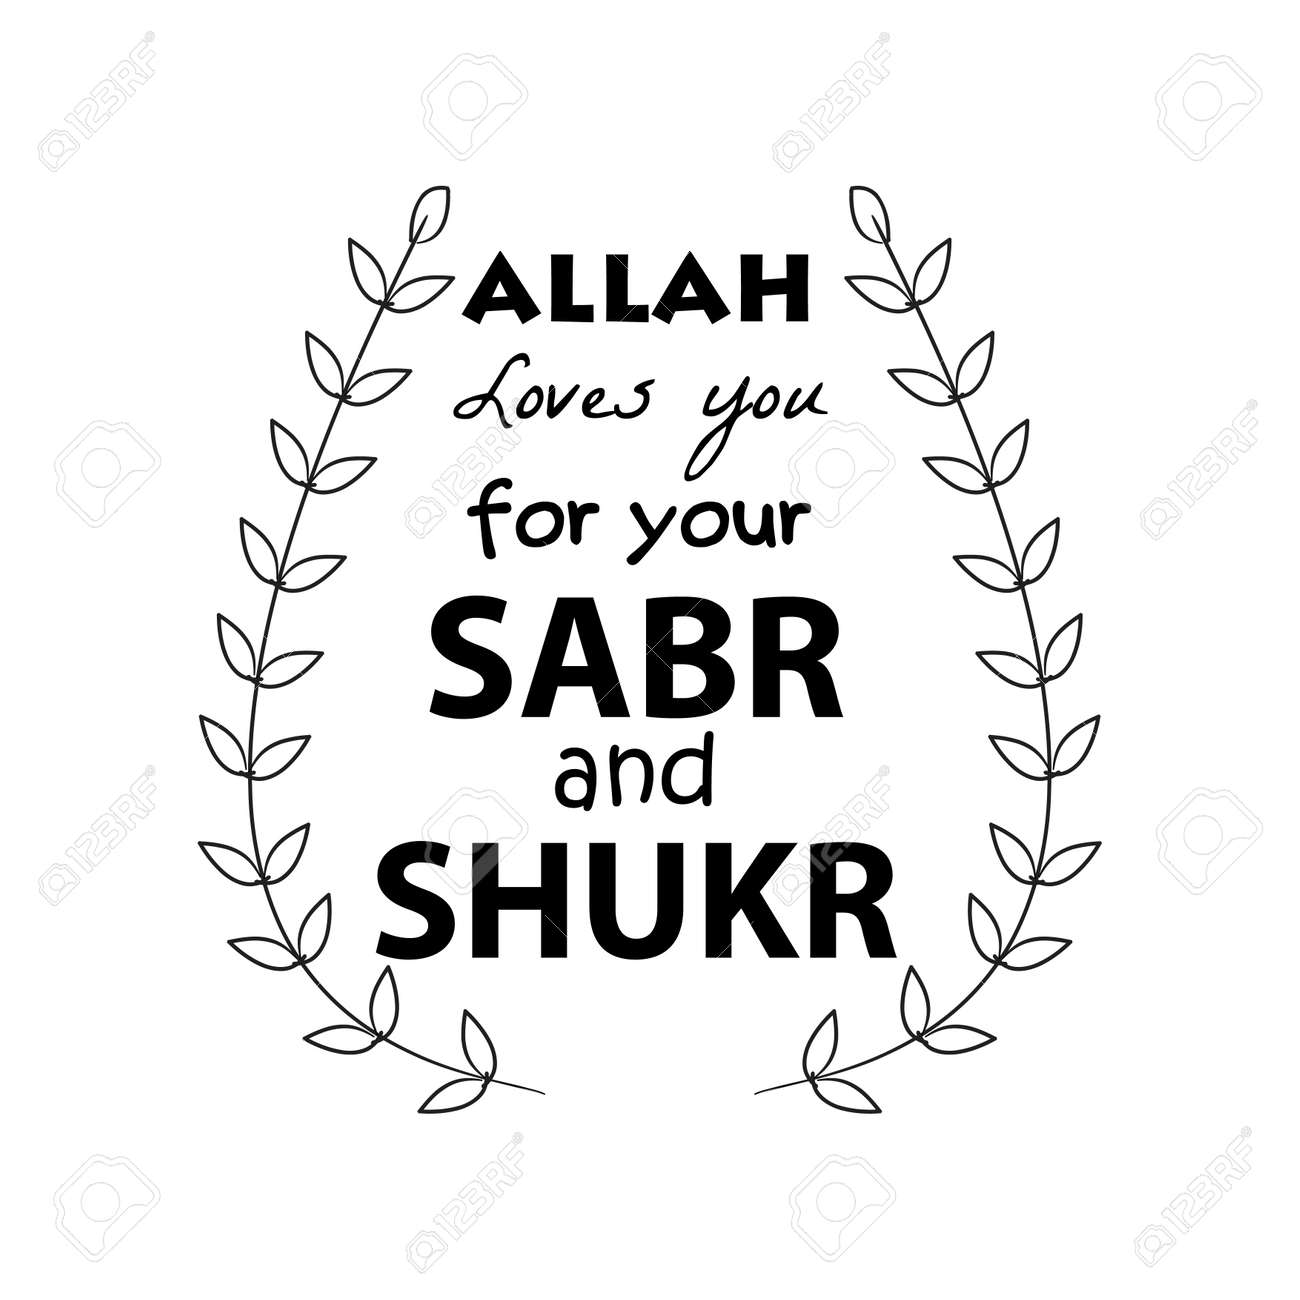 Allah Loves You For Your Sabr And Shukr Motivational Quote Royalty